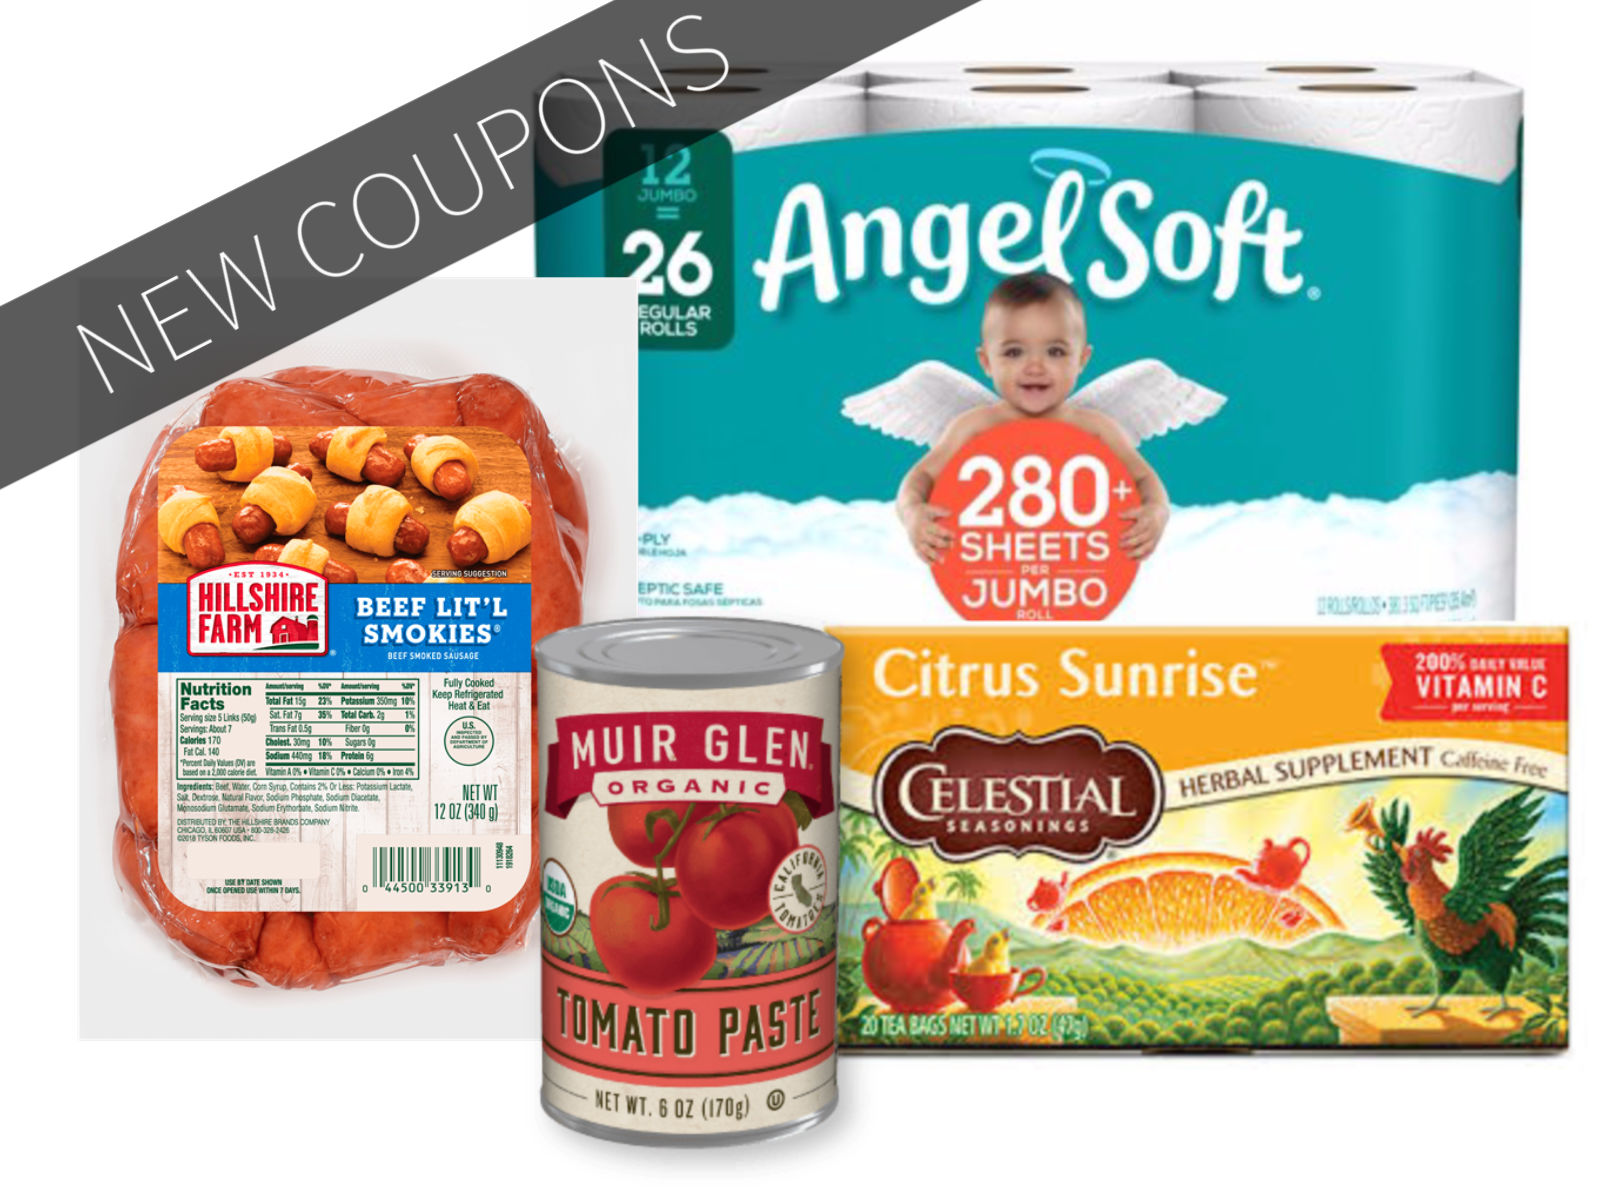 Happy October - New Coupons To Print! on I Heart Publix